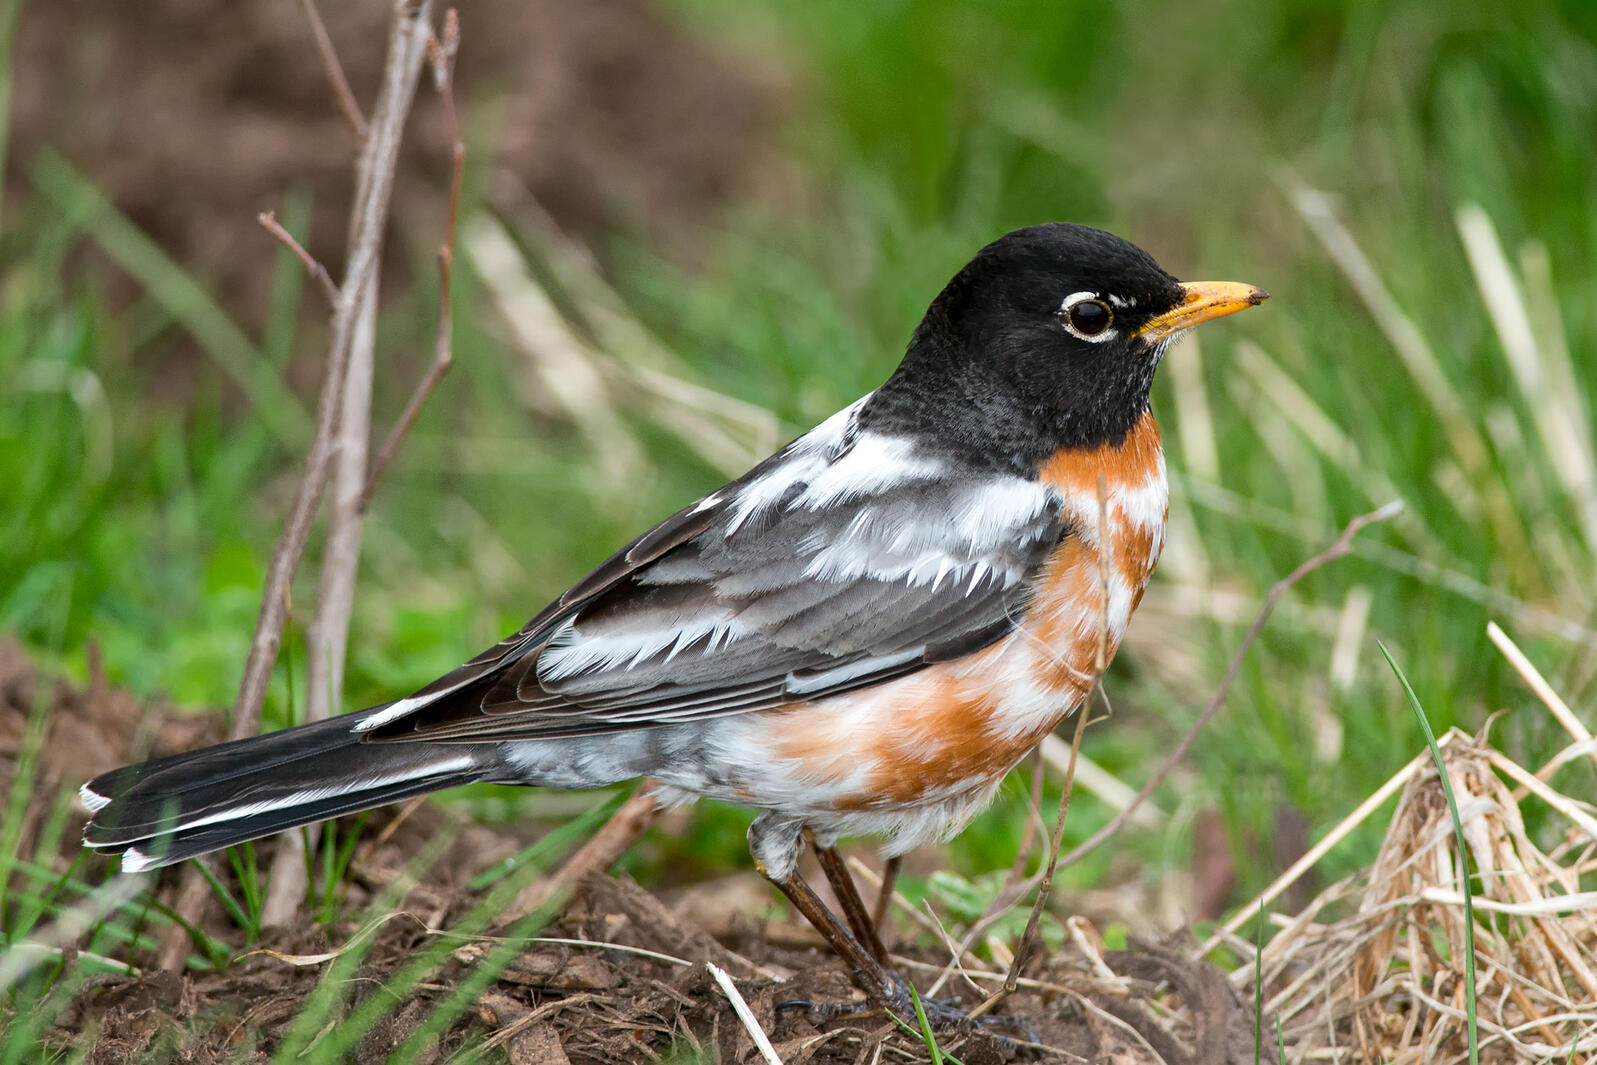 American Robin with leucism. Paul Reeves Photography/iStock